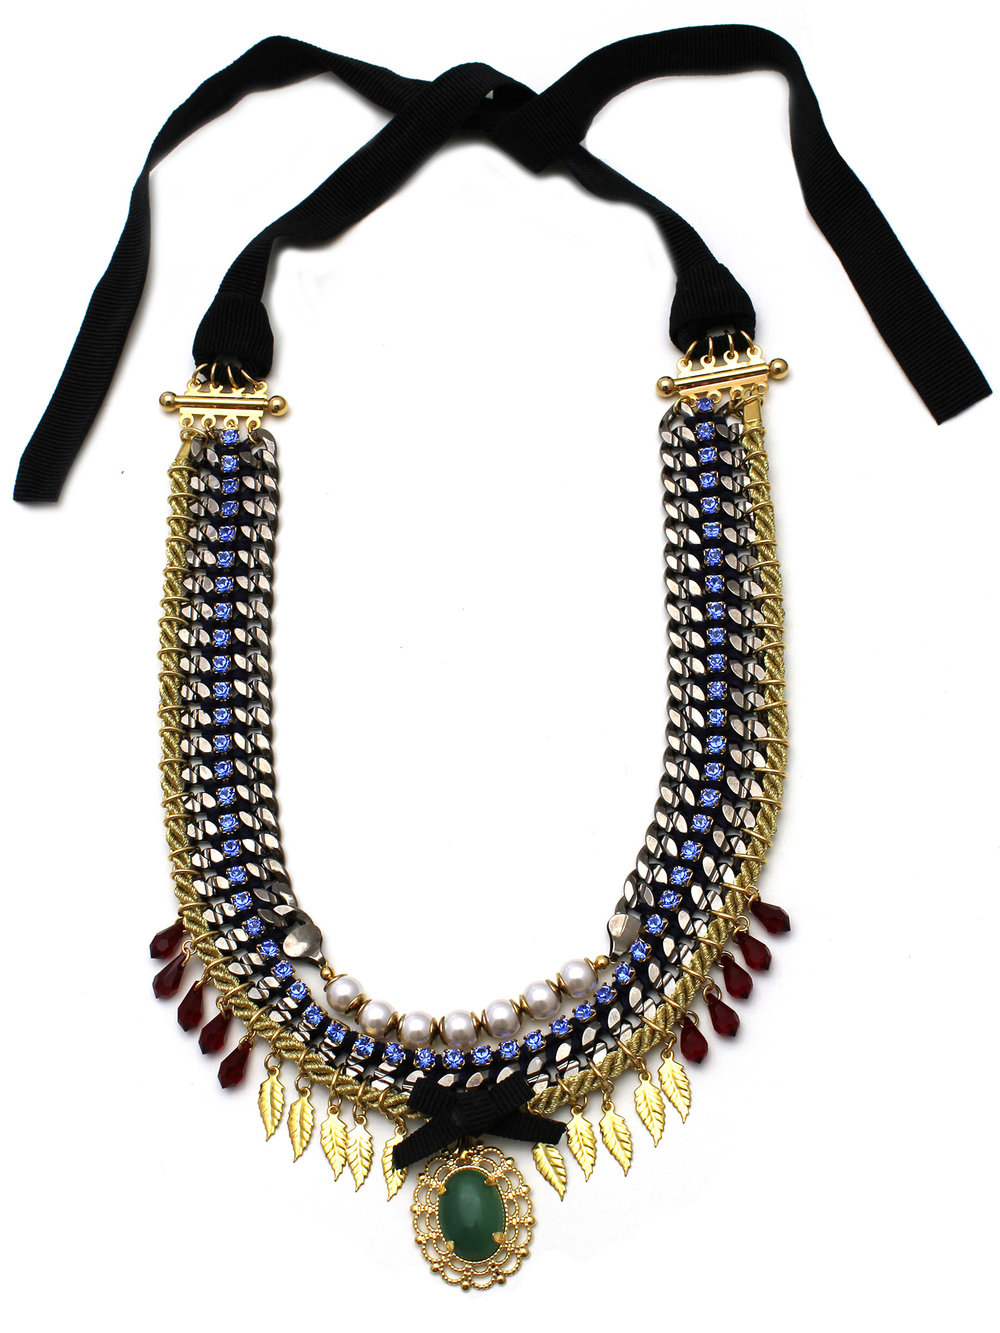 071 - Sapphire & Pearl Leaf Necklace.jpg